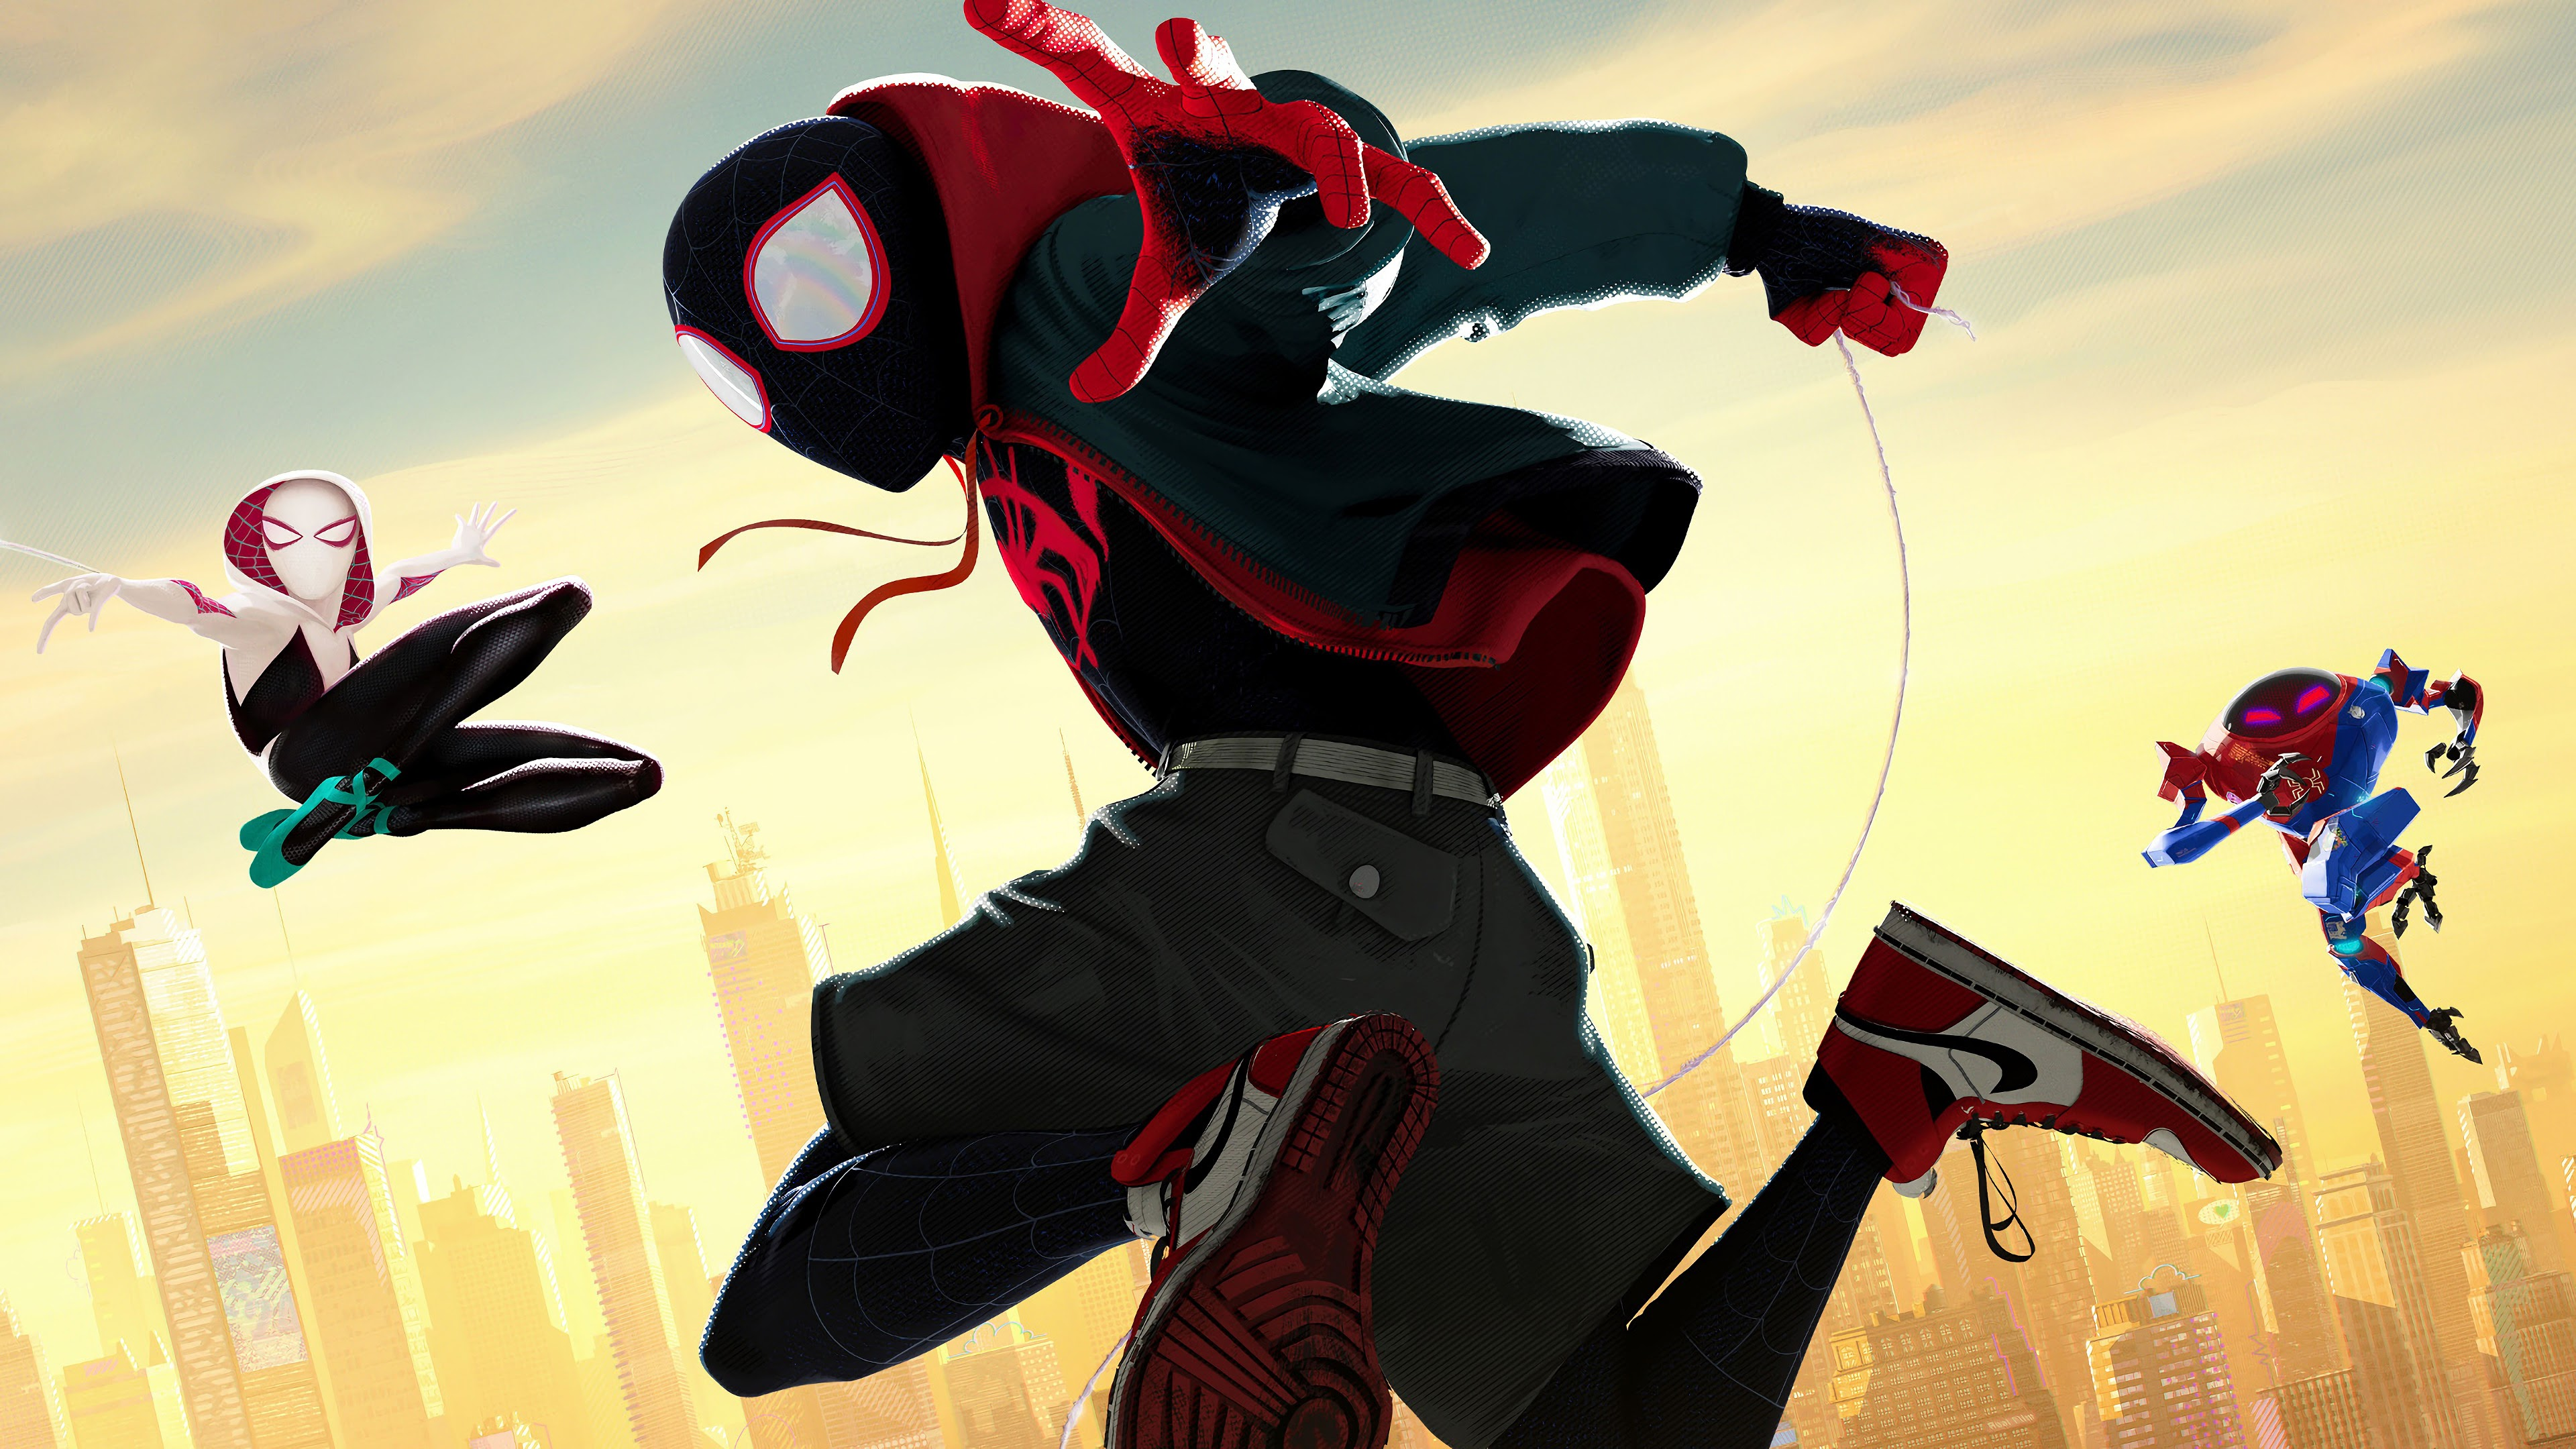 Spiderman Wallpaper Hd Android Miles Morales Spider Man Into The Spider Verse 4k